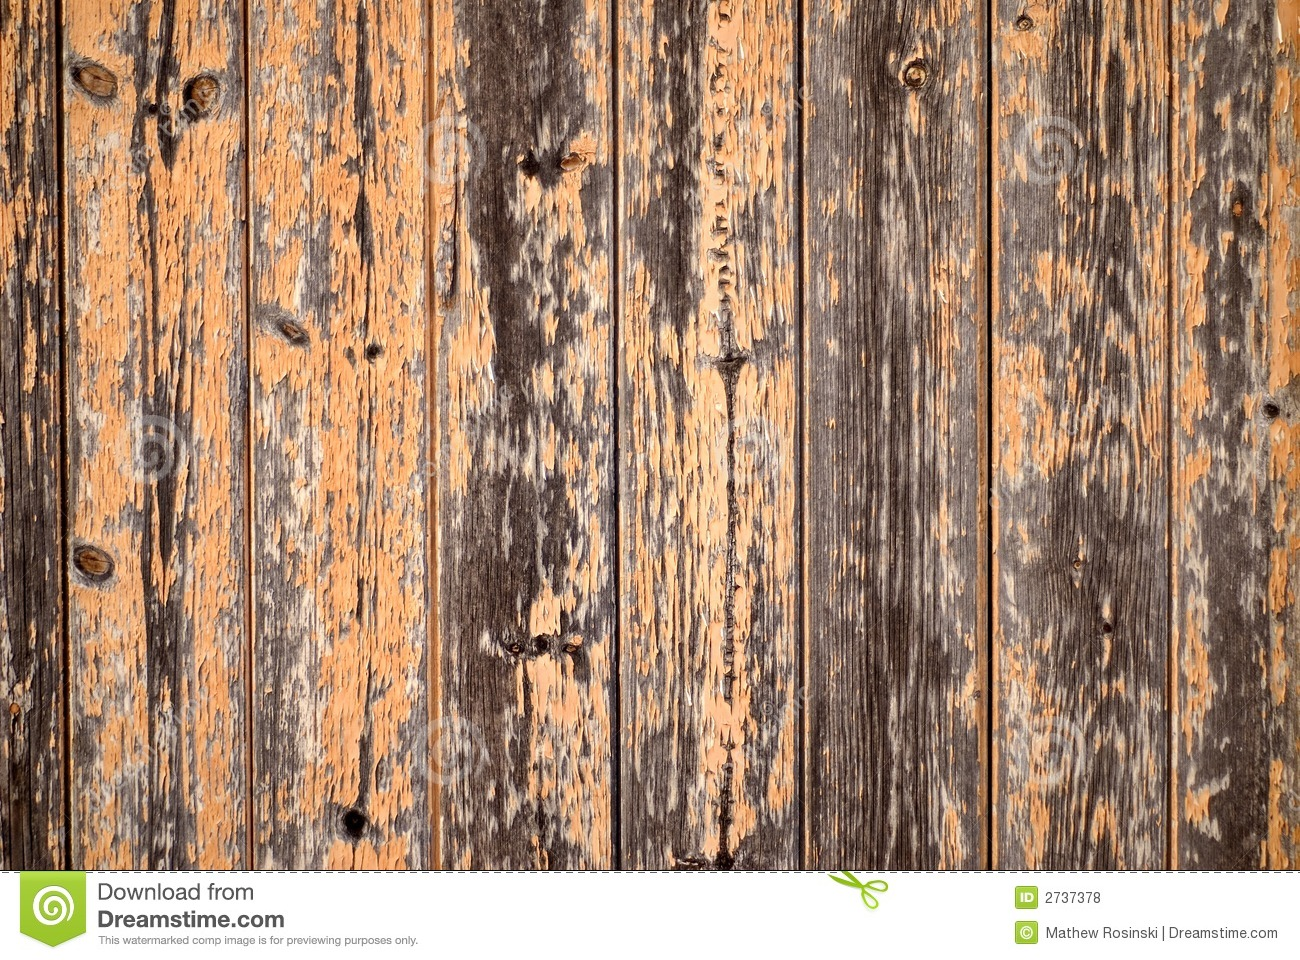 Rustic Barn Wood Wallpaper - WallpaperSafari